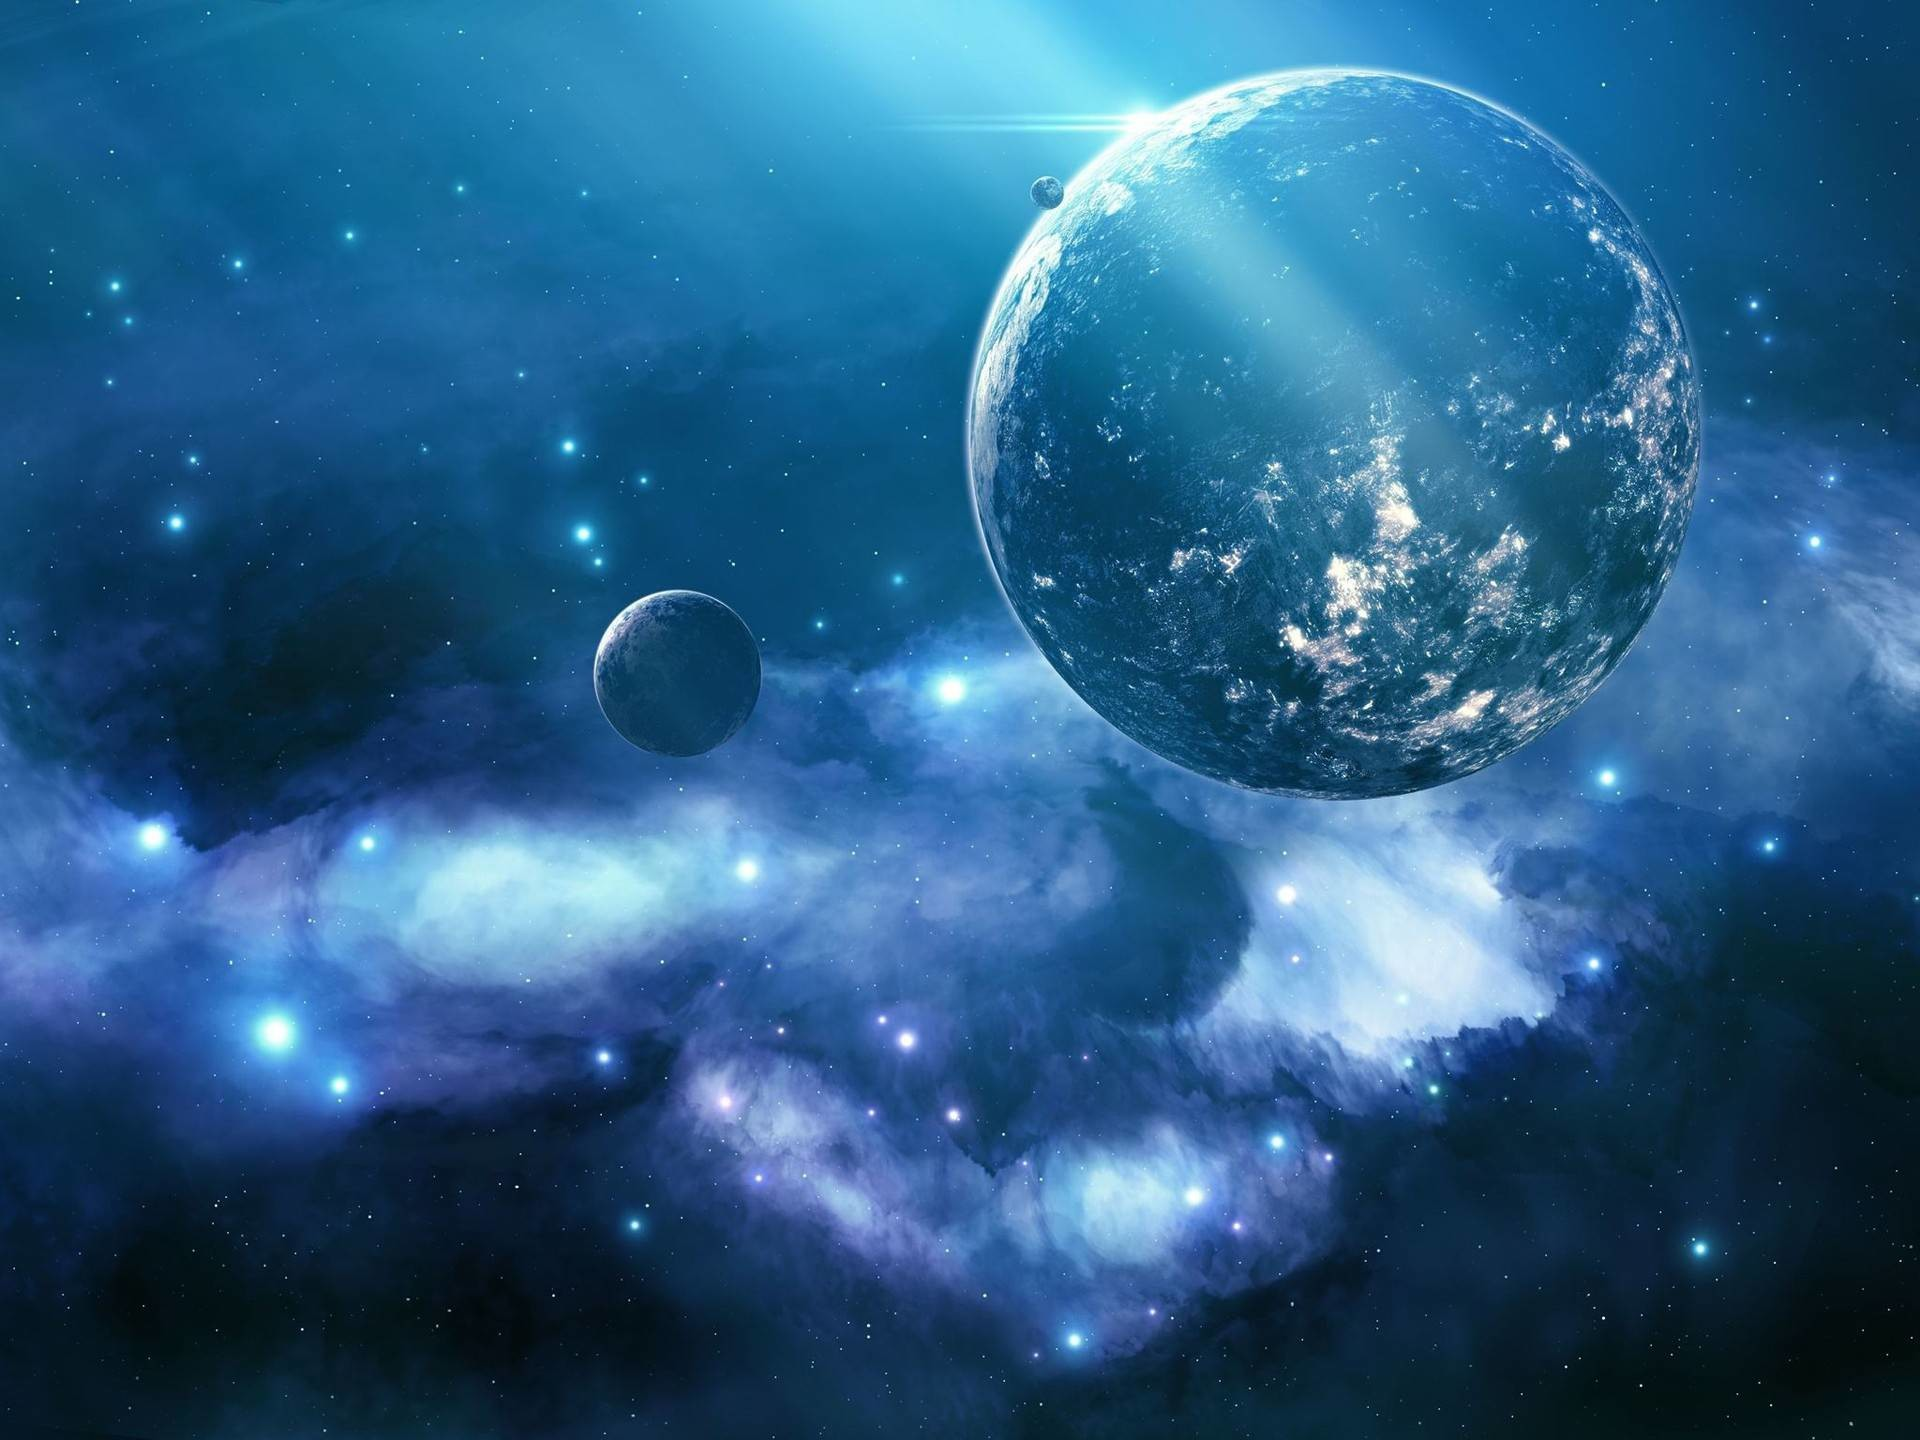 Galaxy wallpaper – (#8810) – High Quality and Resolution Wallpapers on .